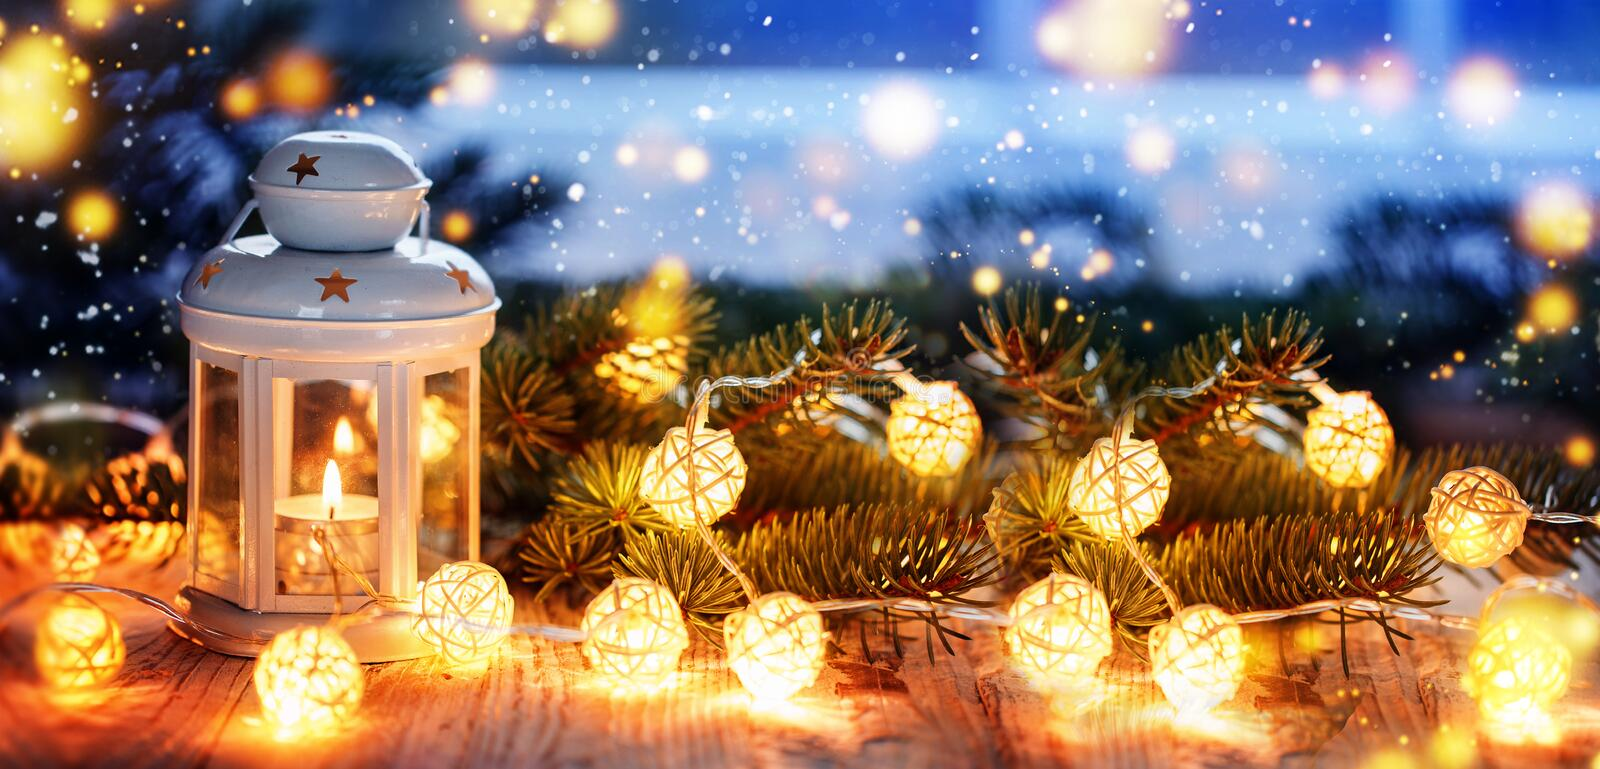 Christmas candle lantern, Christmas and New Year background, Banner. royalty free stock images